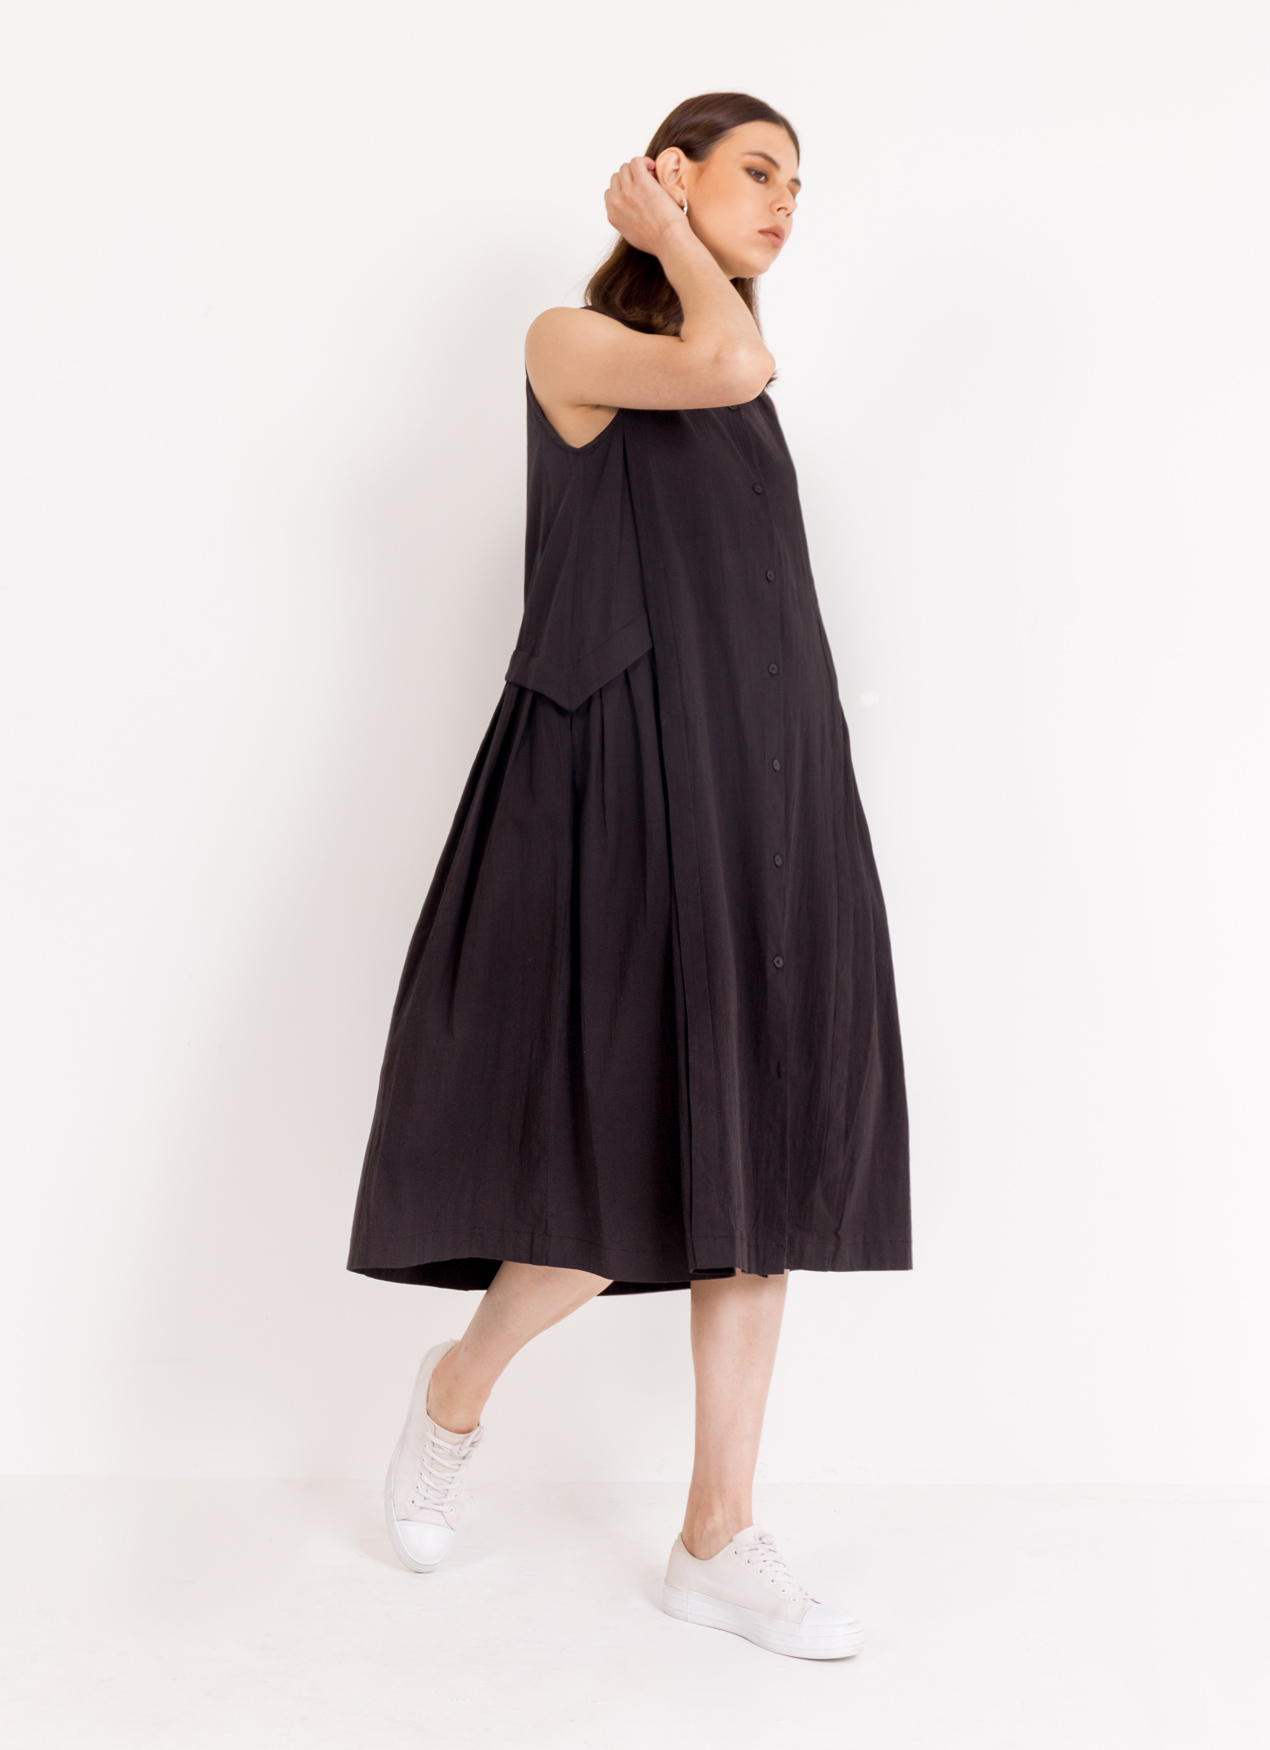 BOWN Greta Dress - Black